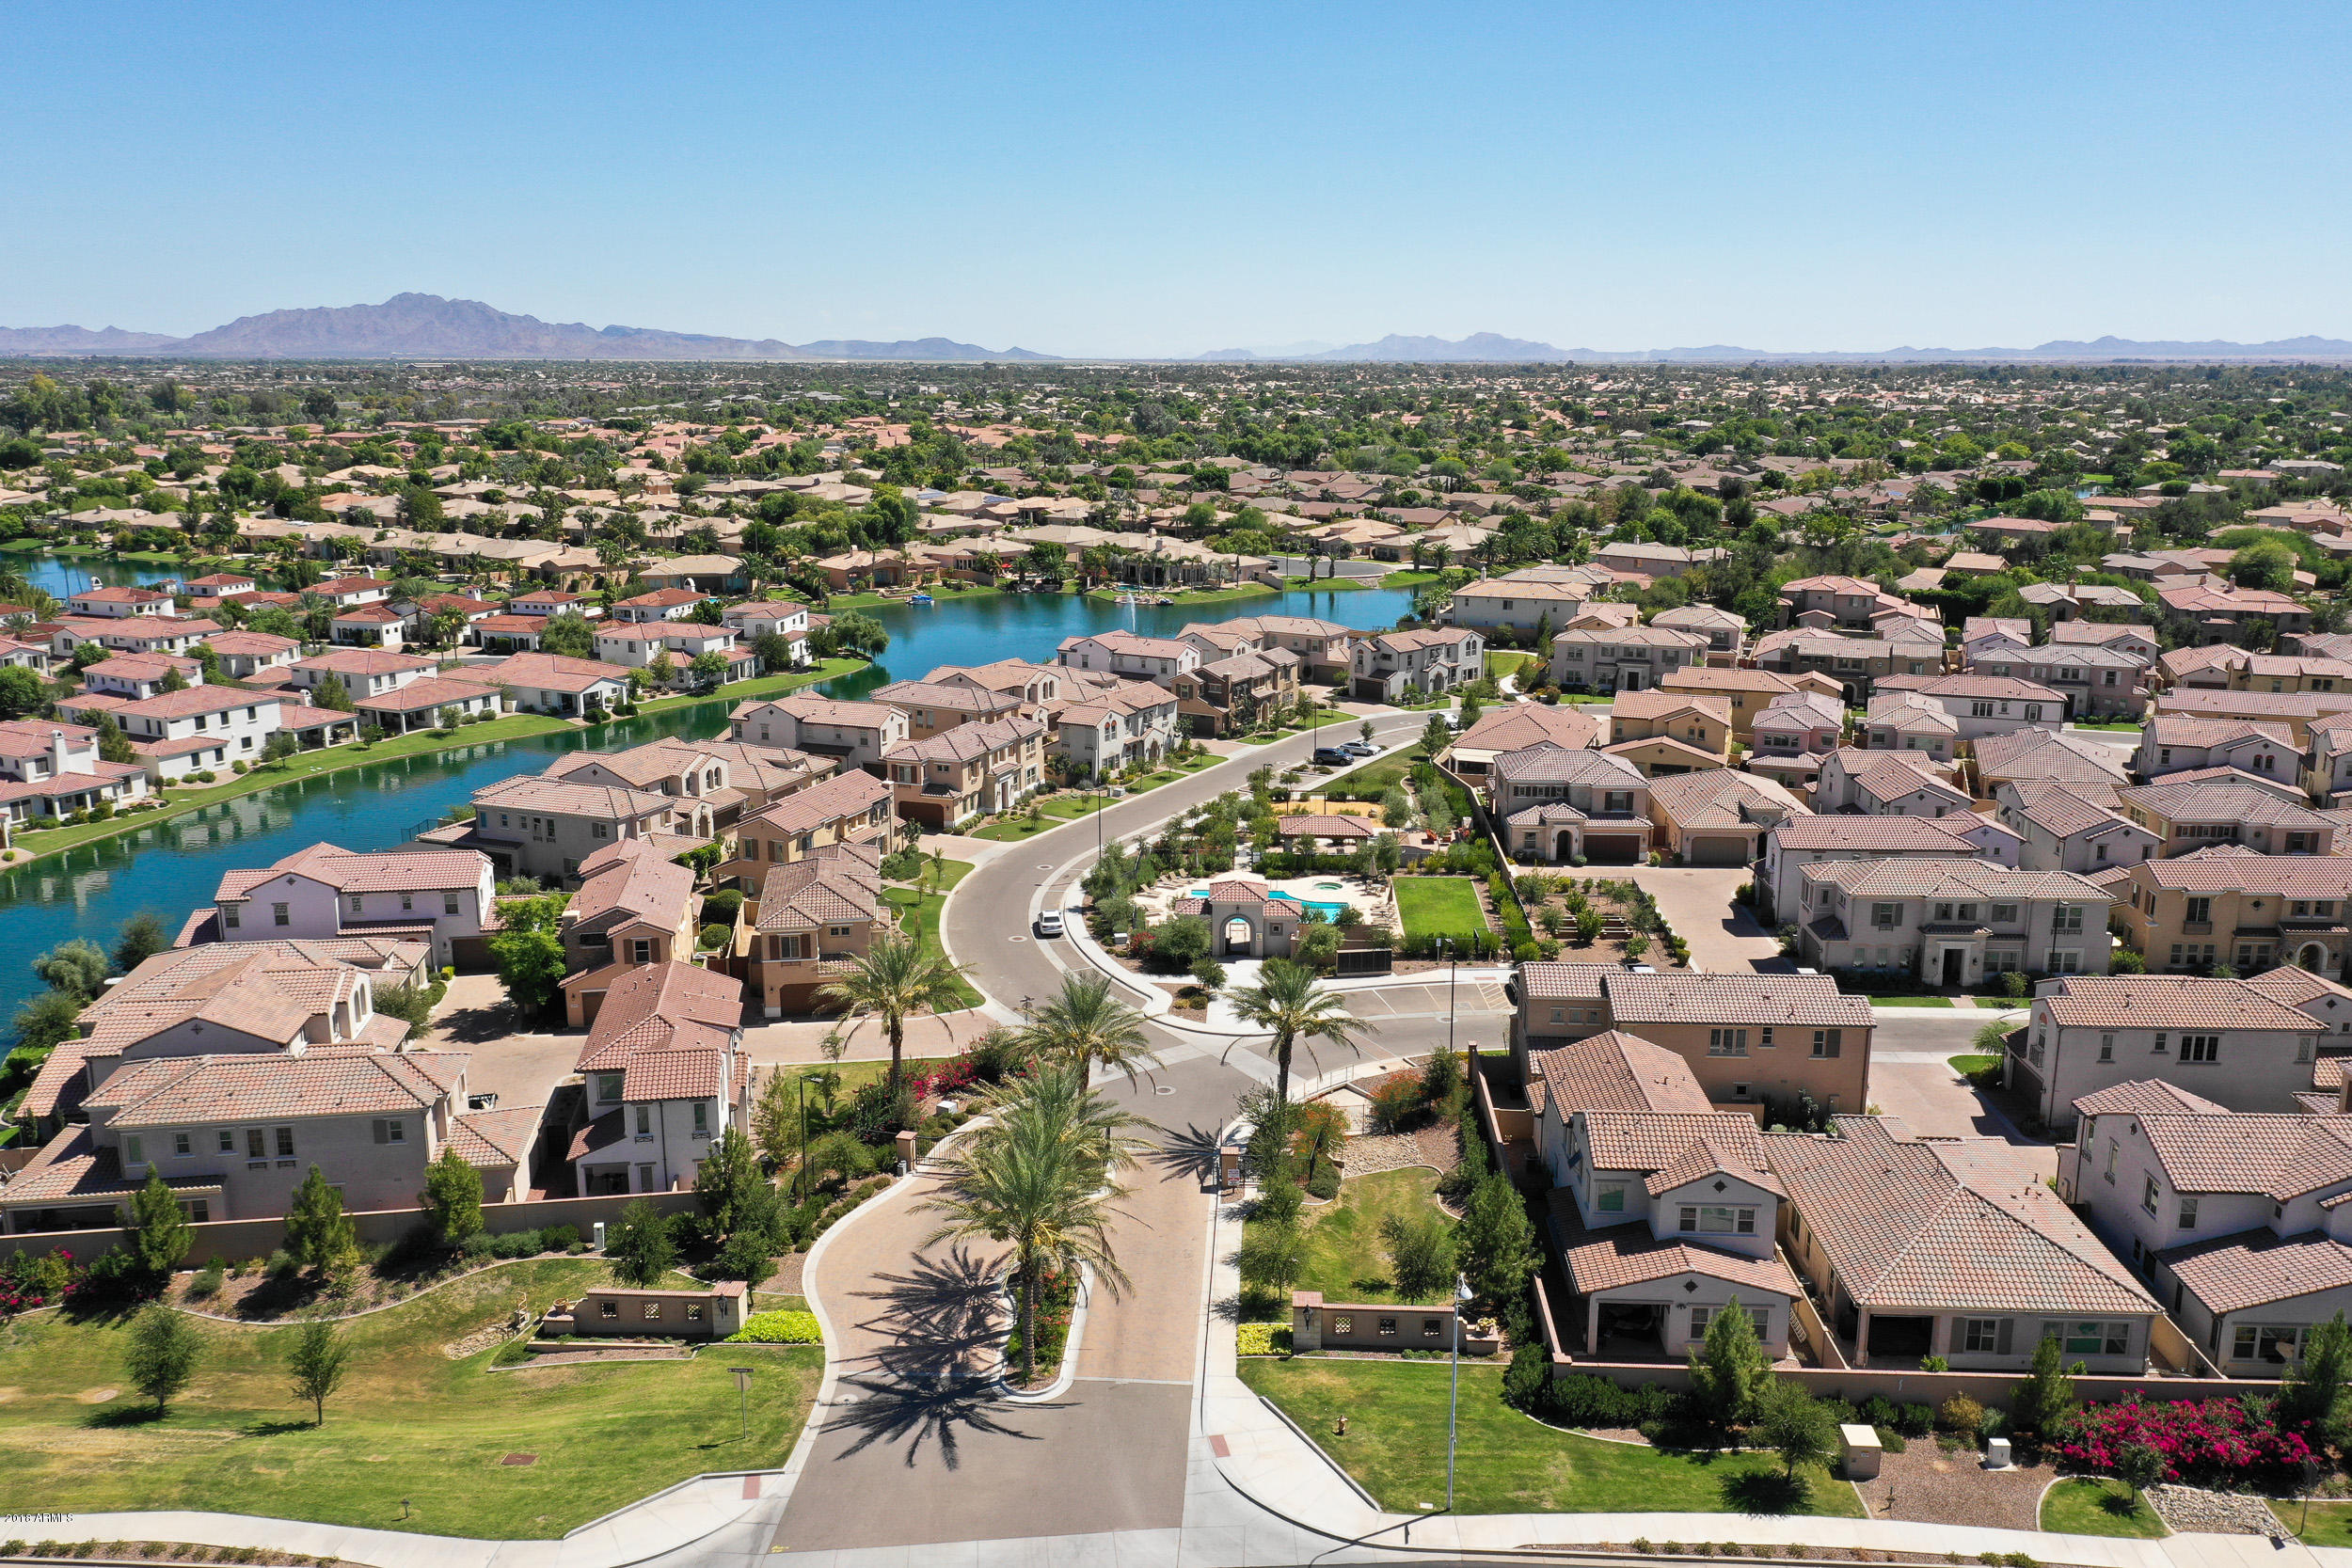 MLS 5823682 4143 S PECAN Drive, Chandler, AZ 85248 Community Pool